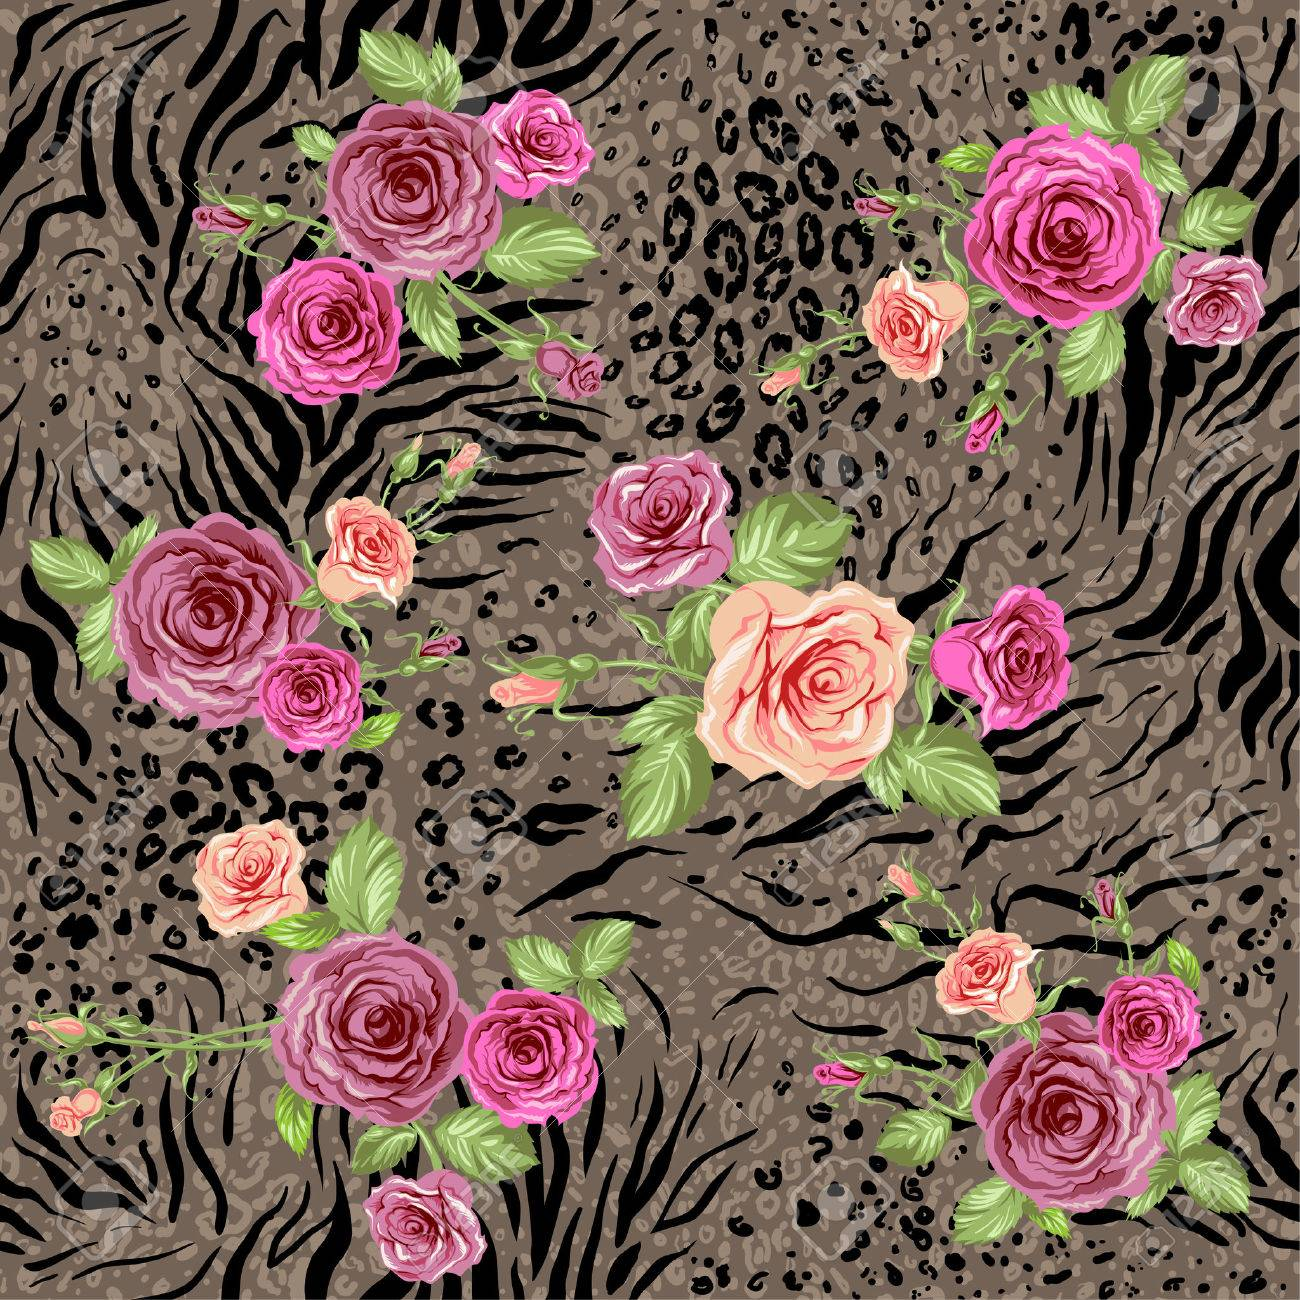 Mixed floral seamless pattern on animal backdrop - 32373061